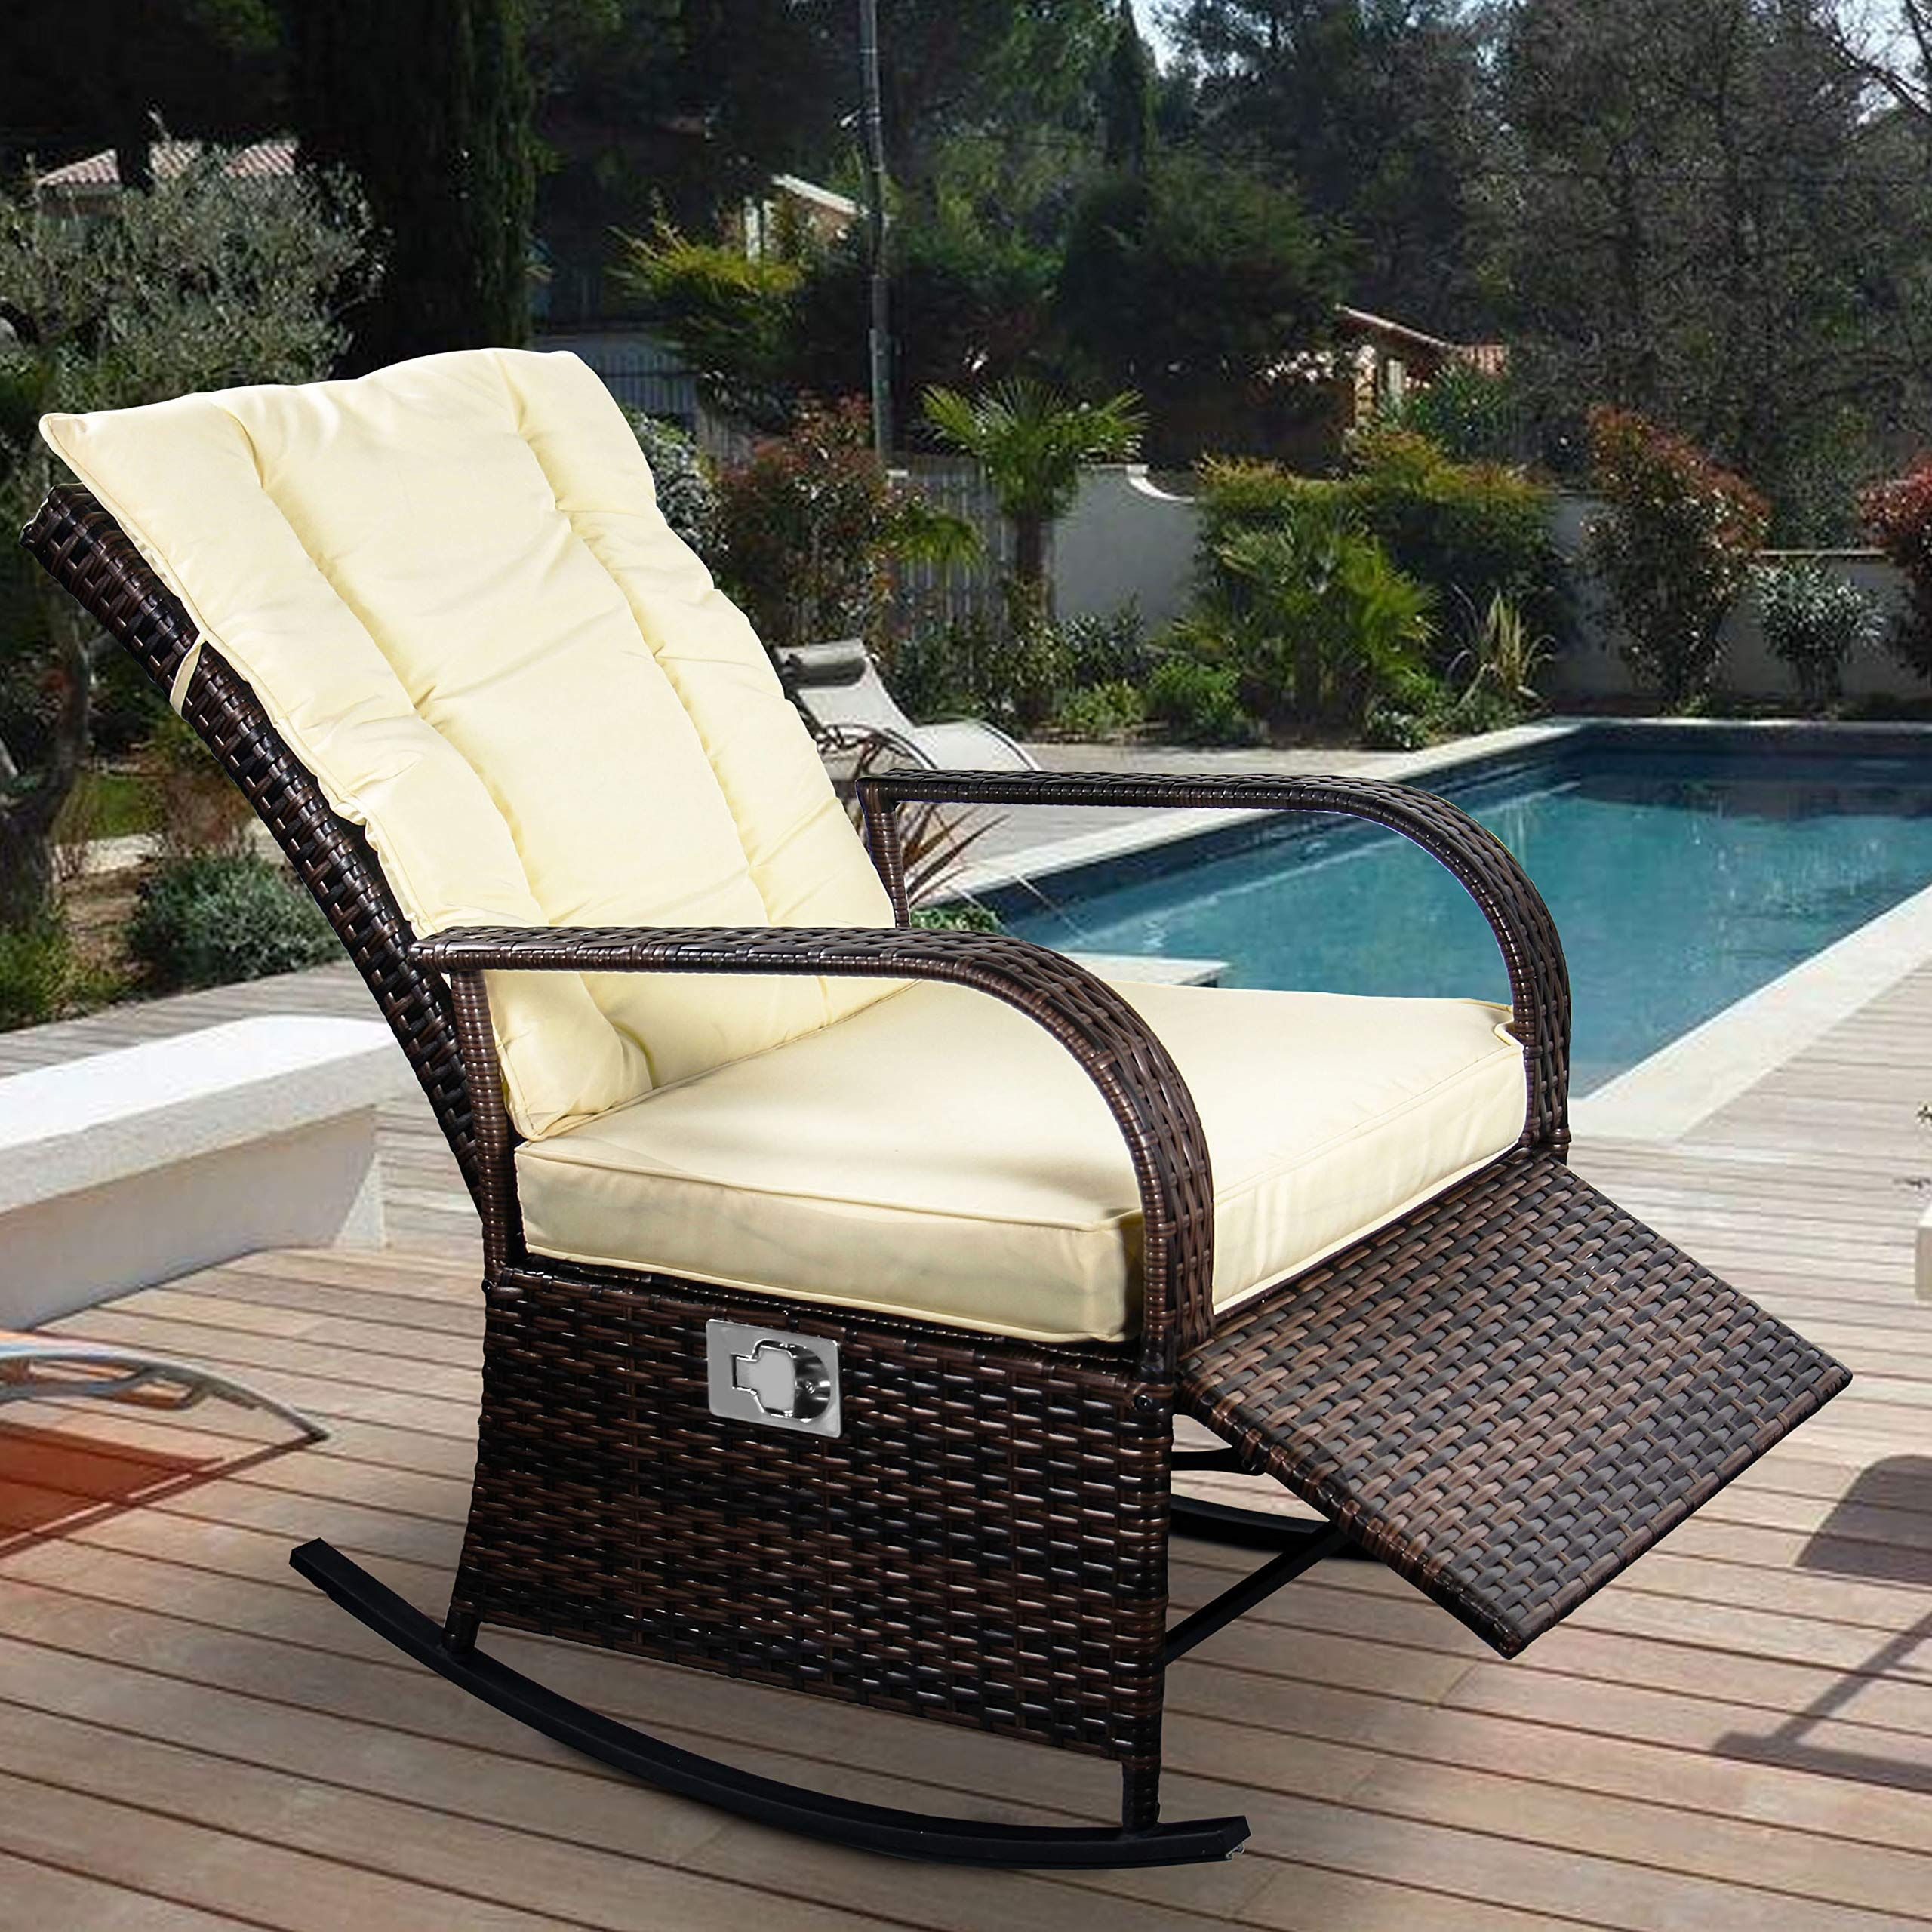 Enstver Indoor And Outdoor Reclining Chairporch Garden Lawn Deck Wicker Rocke Chairauto Adjustable Rattan Sofa W Cush With Images Reclining Sofa Outdoor Chairs Rattan Sofa